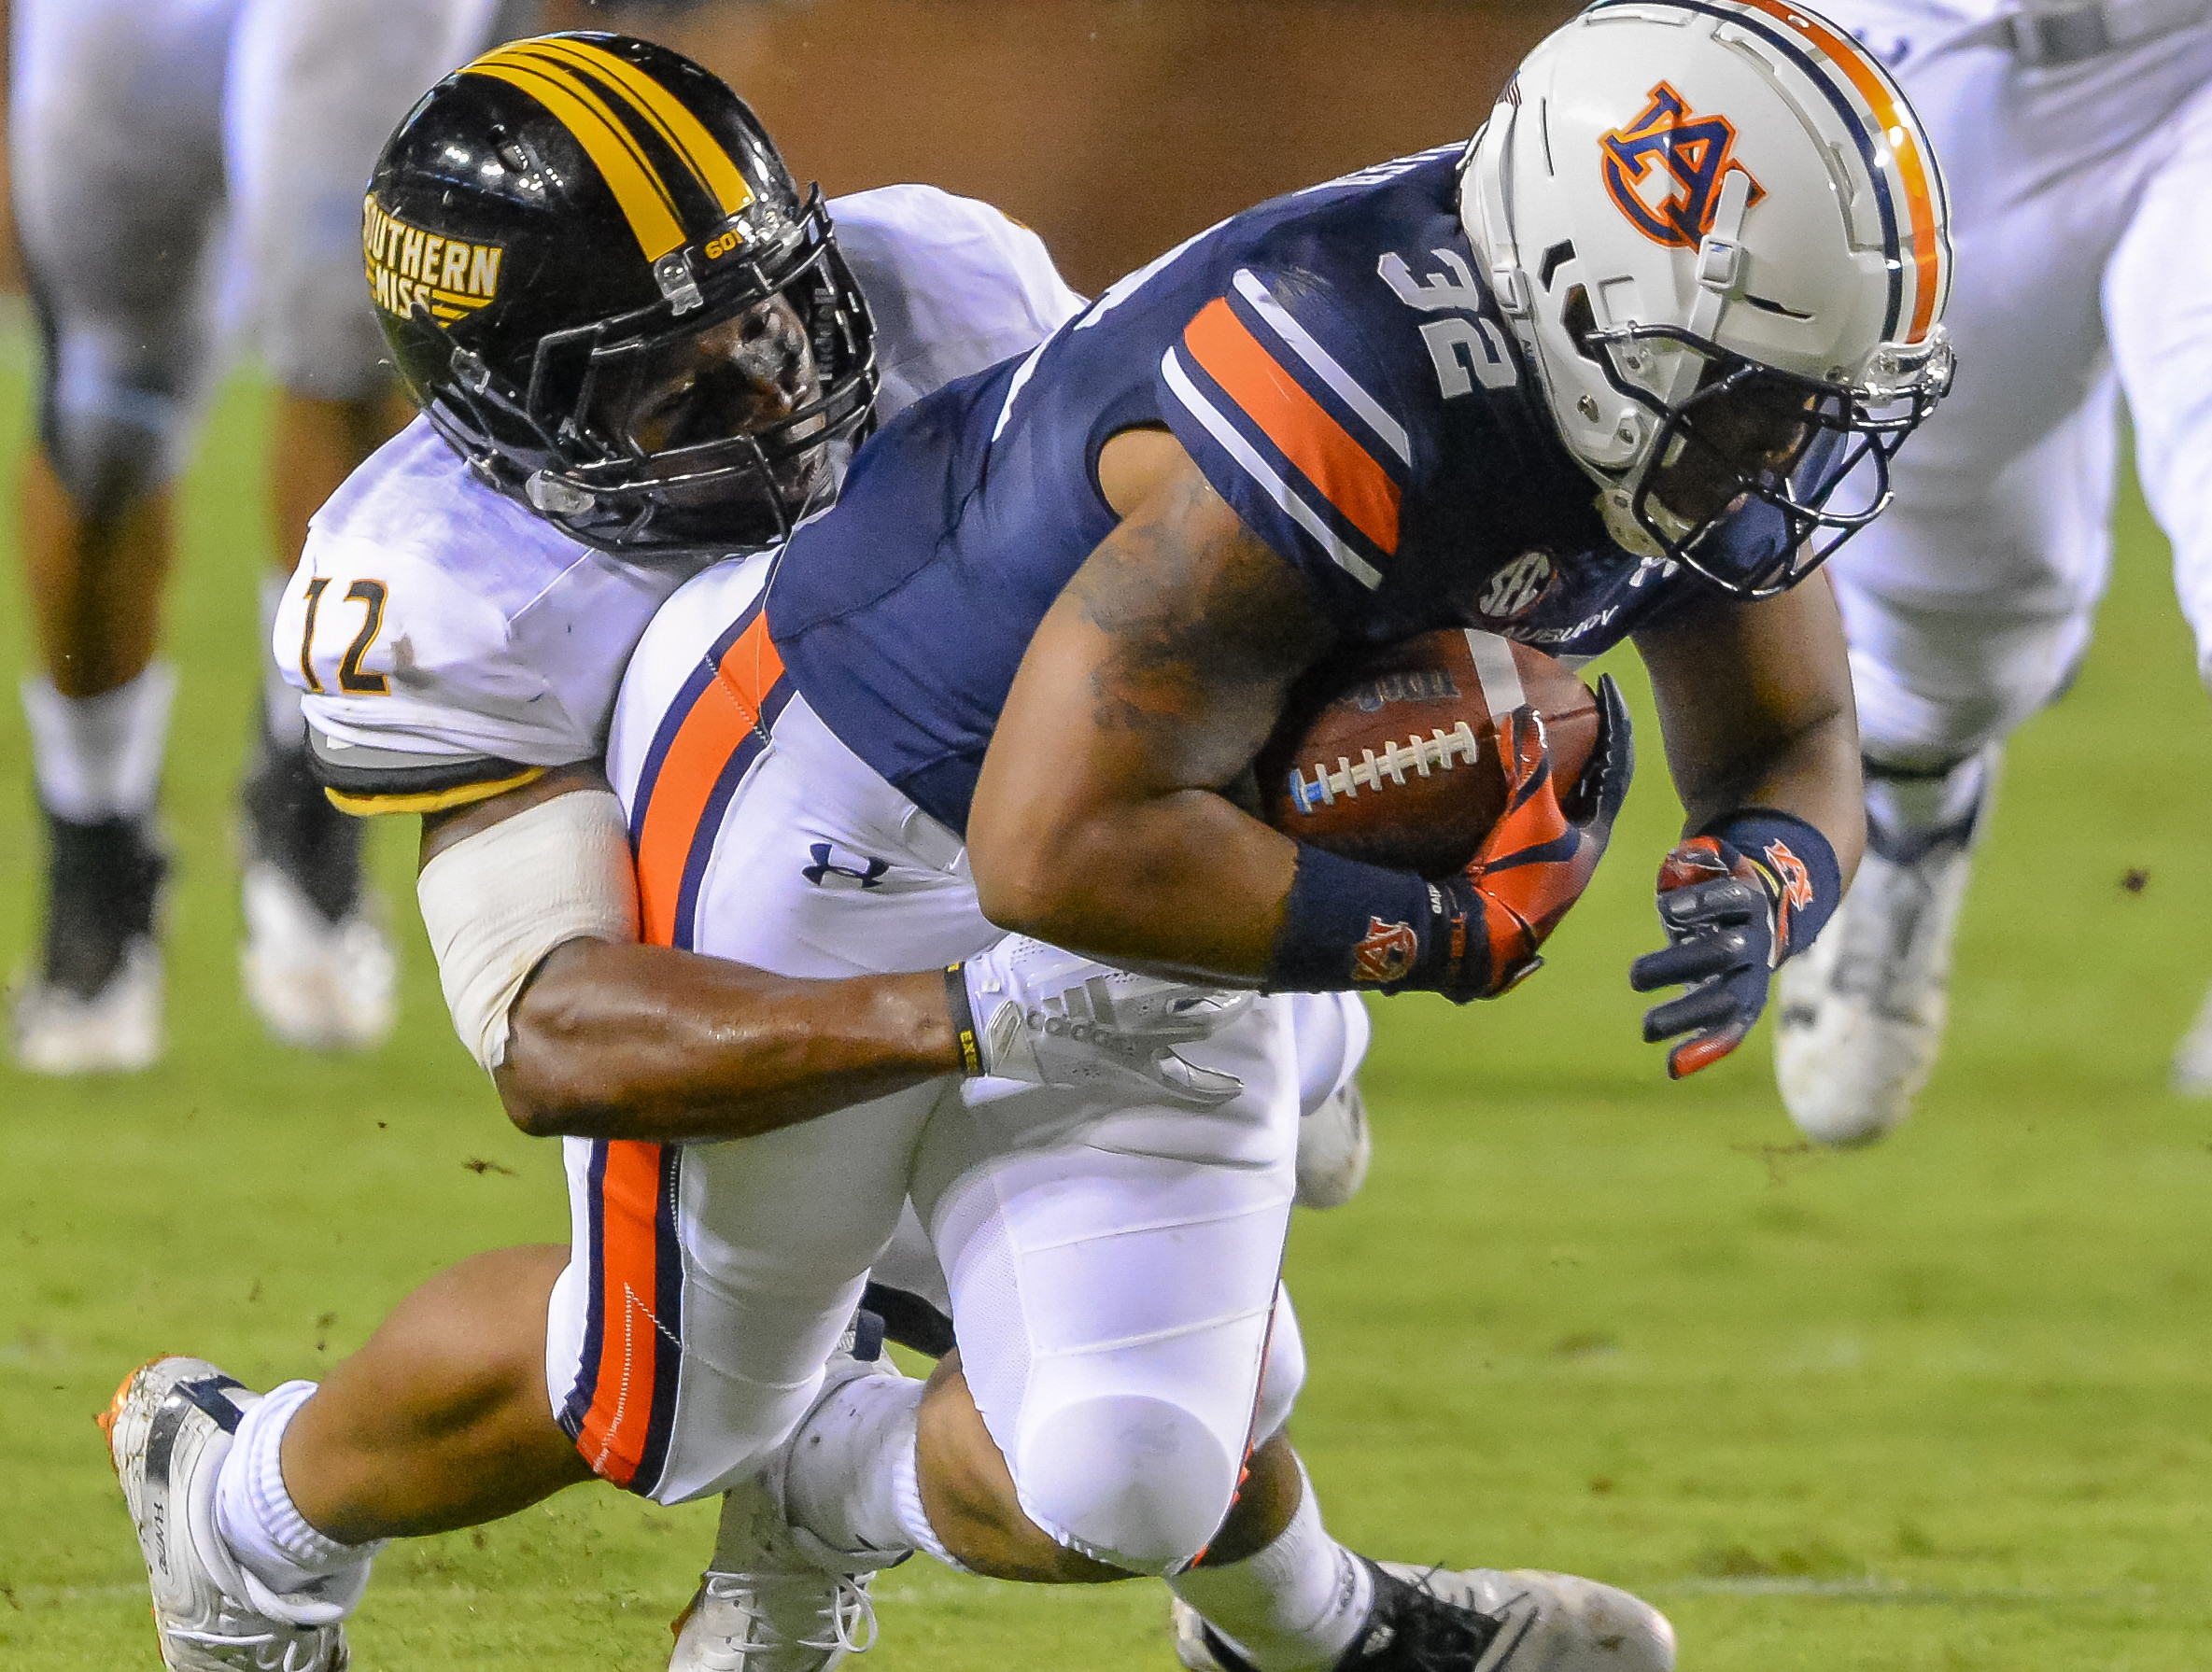 Southern Miss Golden Eagles defensive back D.Q. Thomas (12) brings down Auburn Tigers running back Malik Miller (32) during the second half of Saturday's game, at Jordan Hare Stadium in Auburn AL. Daily Mountain Eagle -  Jeff Johnsey